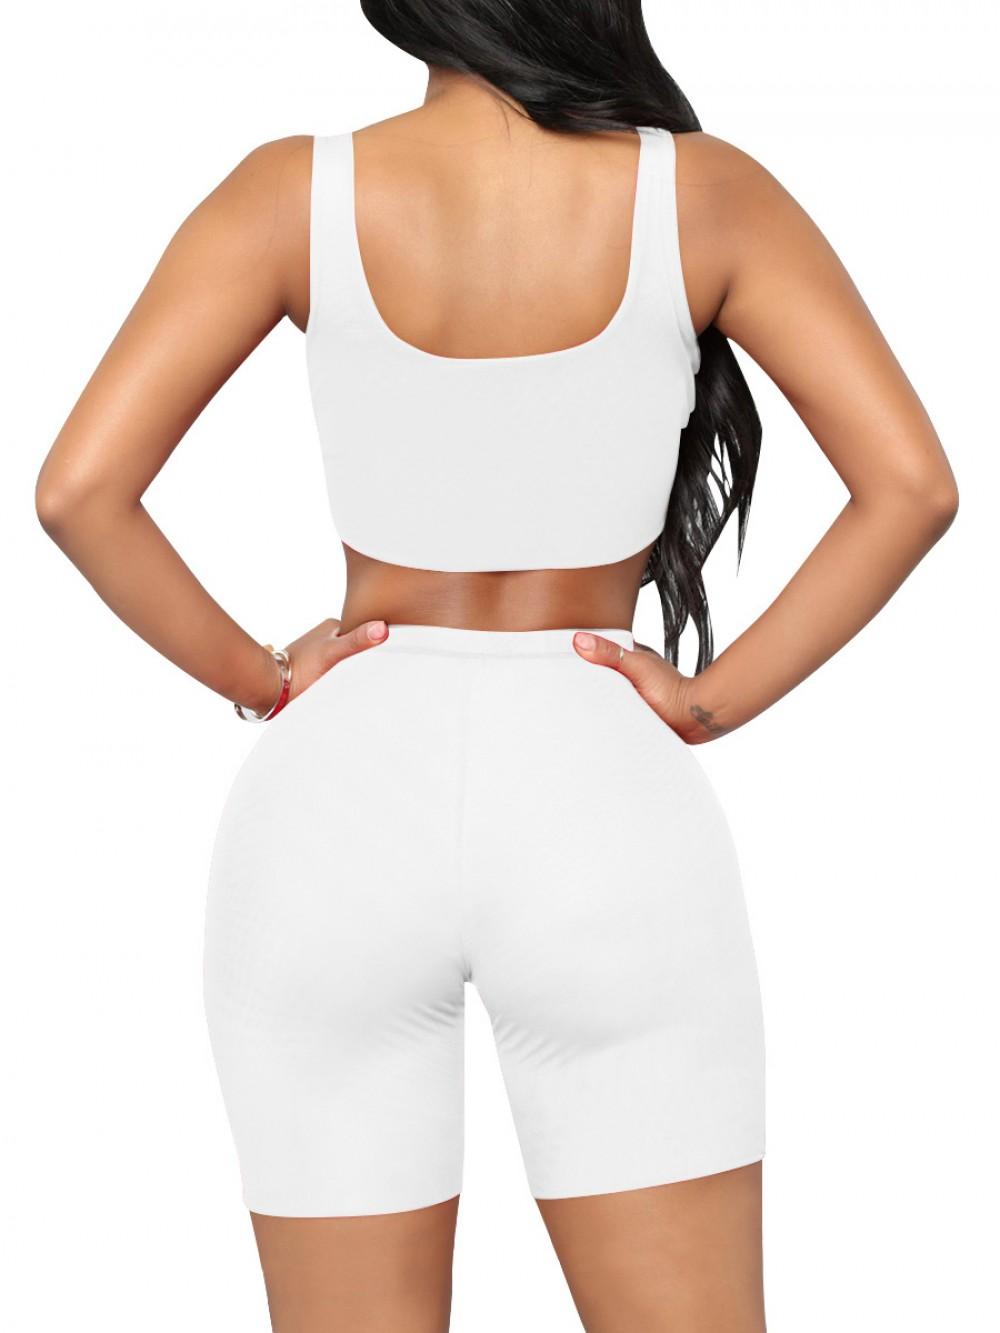 Upgrade White Cropped Sports Shorts Suit High Waist Soft-Touch